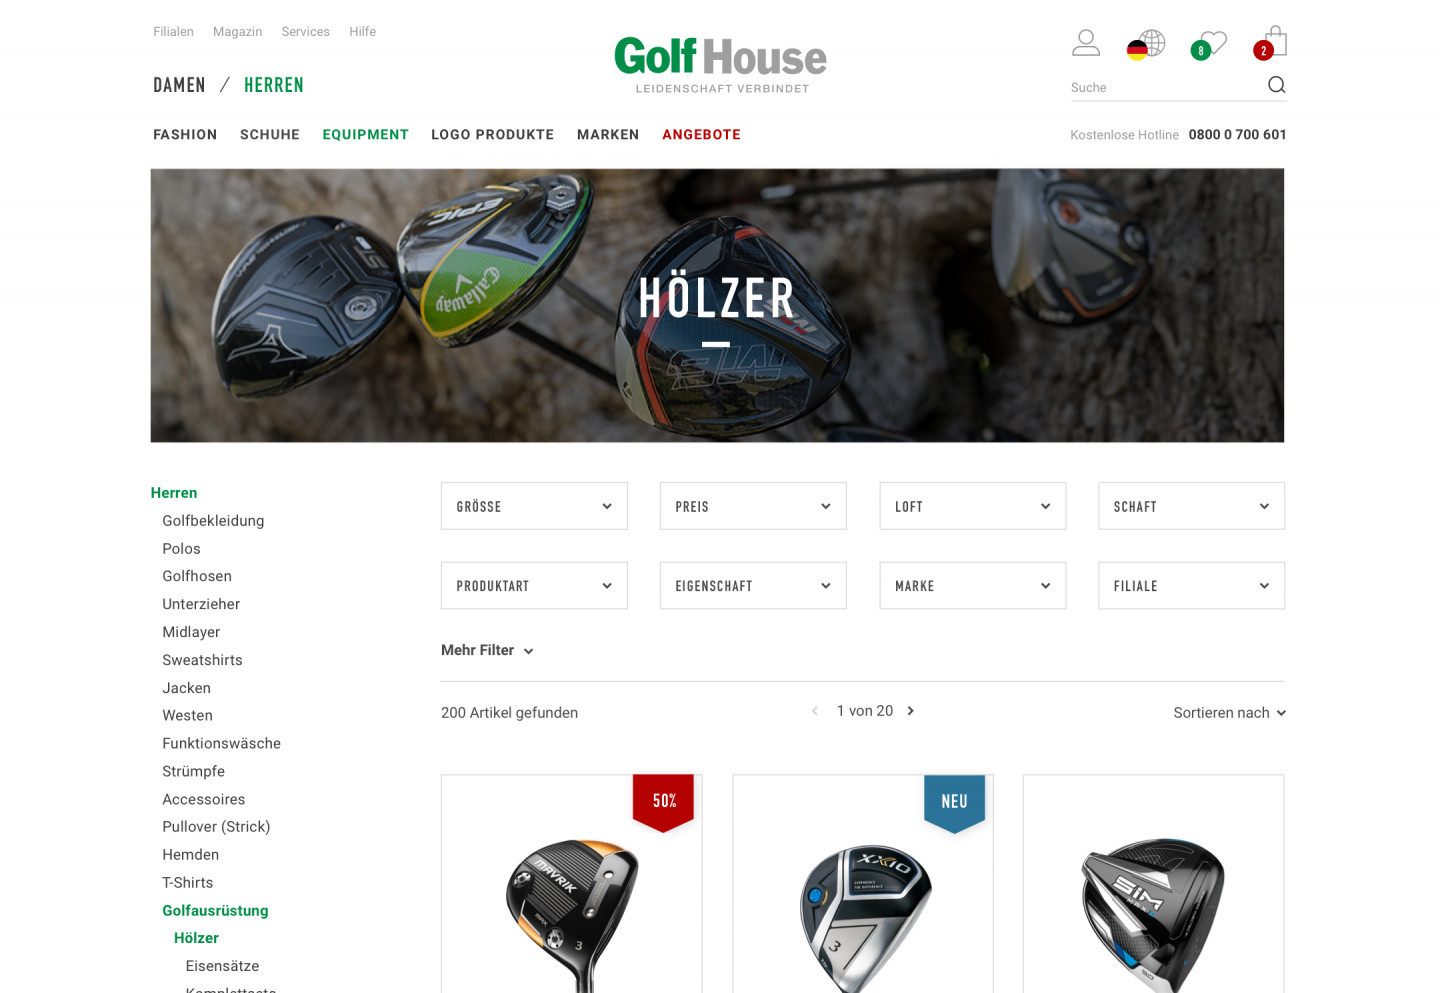 A category overview in the Golf House E-Commerce